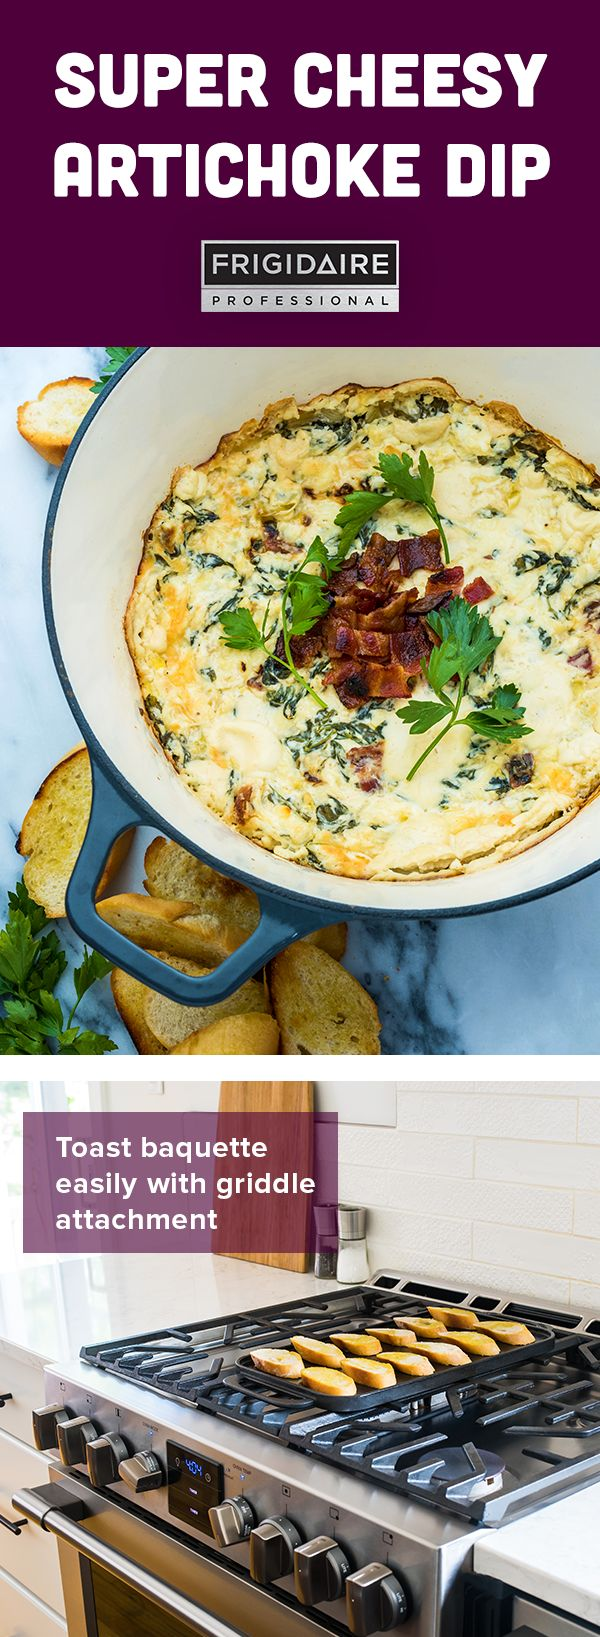 Spinach and artichoke dip has long been a champion in the party food world. Take this classic dish up a notch with crispy maple bacon and toasted baguette slices for dipping, made easy with the Frigidaire Professional griddle attachment. A breeze to prepare and guaranteed to result in multiple recipe requests. Click for full recipe by @dennisprescott.